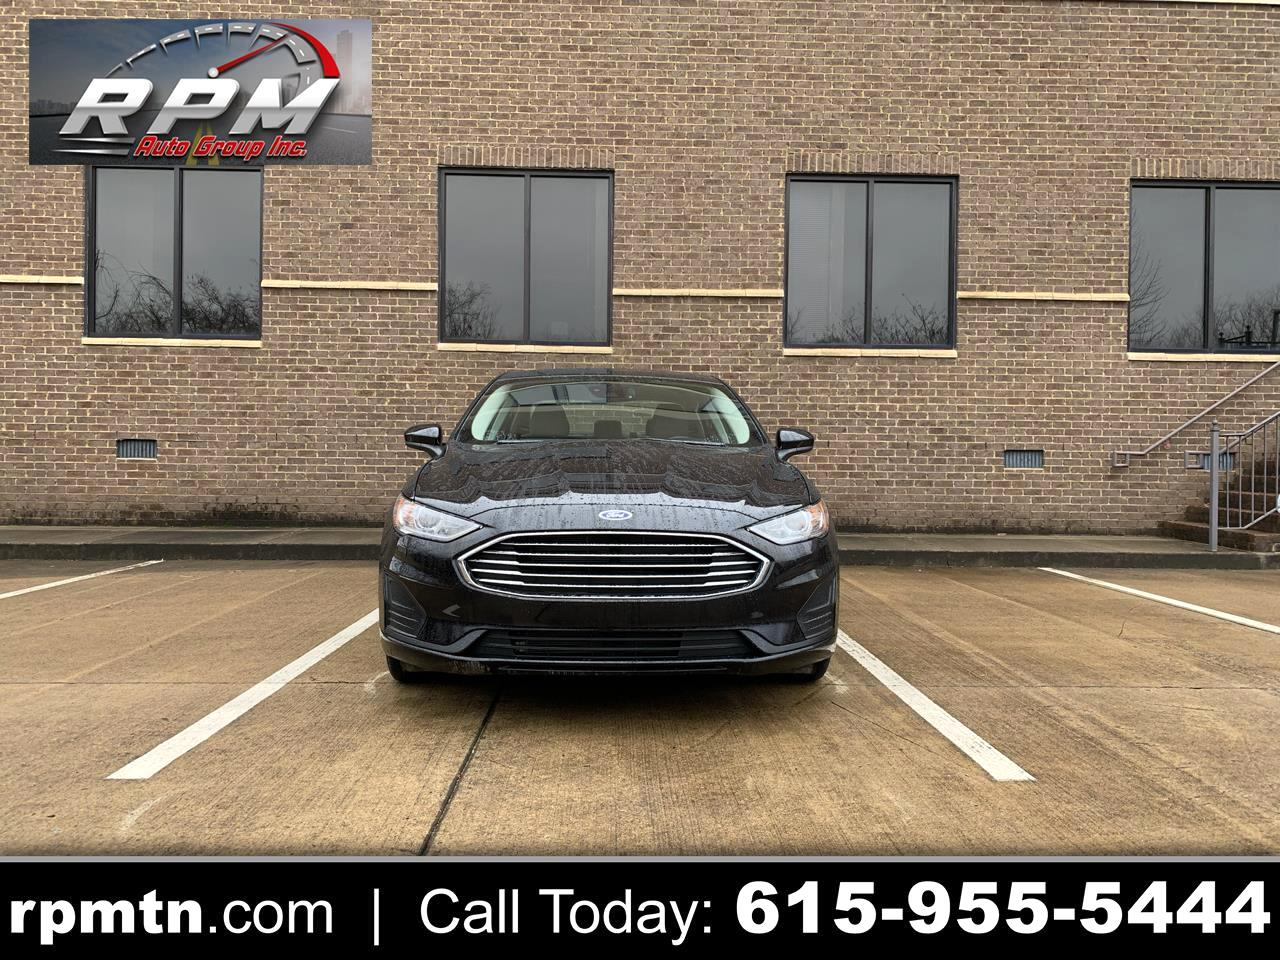 Ford Fusion 4dr Sdn I4 S 2019